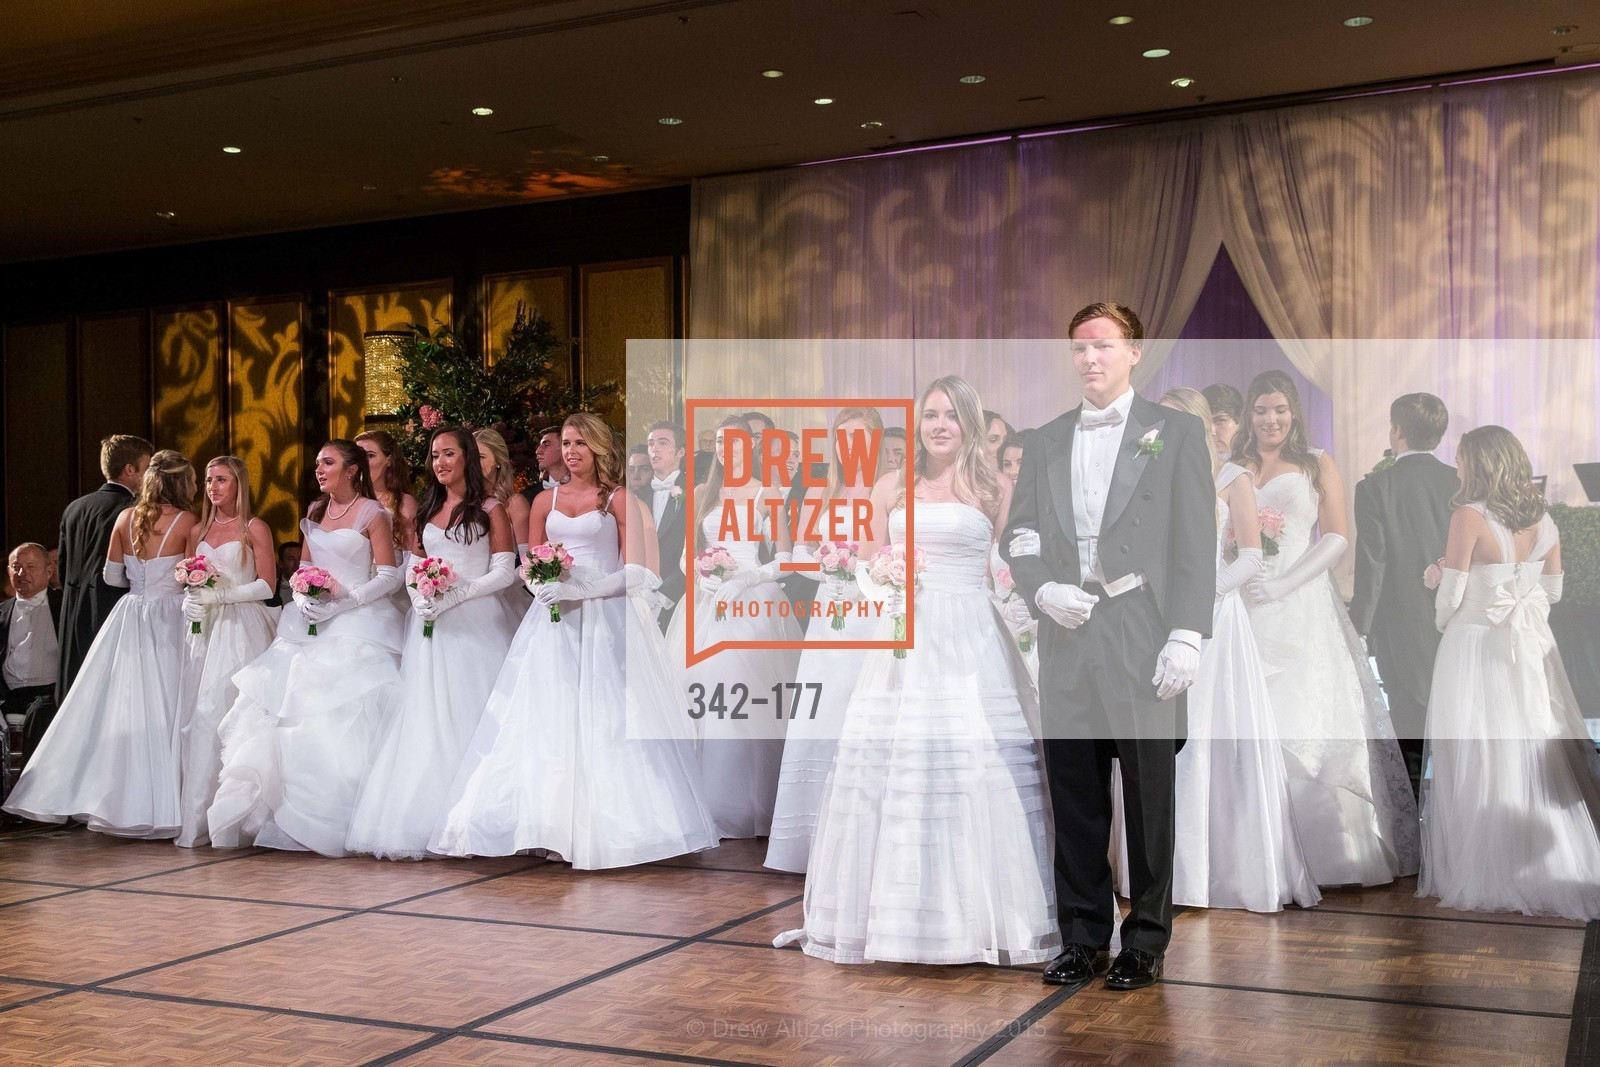 Jennifer Suzanne Reynolds, Jennifer Hannah Baylis, Solange Celeste Soward, Madeleine Elizabeth Lamm, Camille Anne Rich, Katherine Hamilton Harris, Luke Rosser Edwards, Diana Laura Silvestri, Lindsey Marie Weber, The 2015 San Francisco Debutante Ball, The Westin St. Francis San Francisco Union Square. 335 Powell St, June 20th, 2015,Drew Altizer, Drew Altizer Photography, full-service agency, private events, San Francisco photographer, photographer california